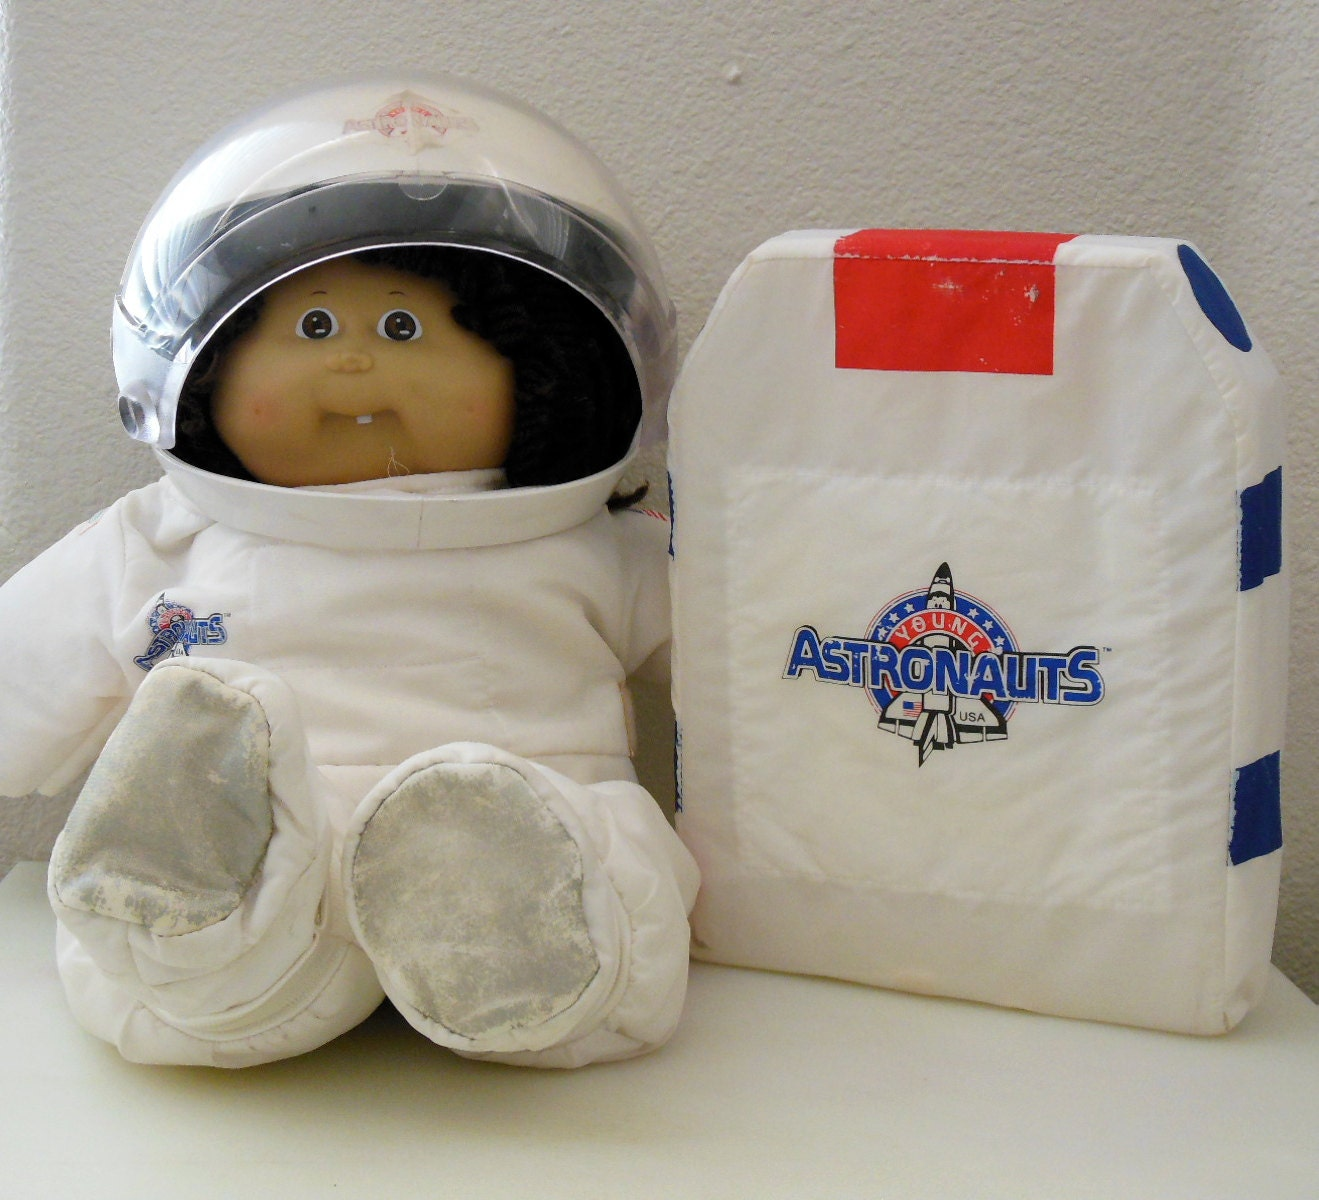 young astronauts cabbage patch doll - photo #22